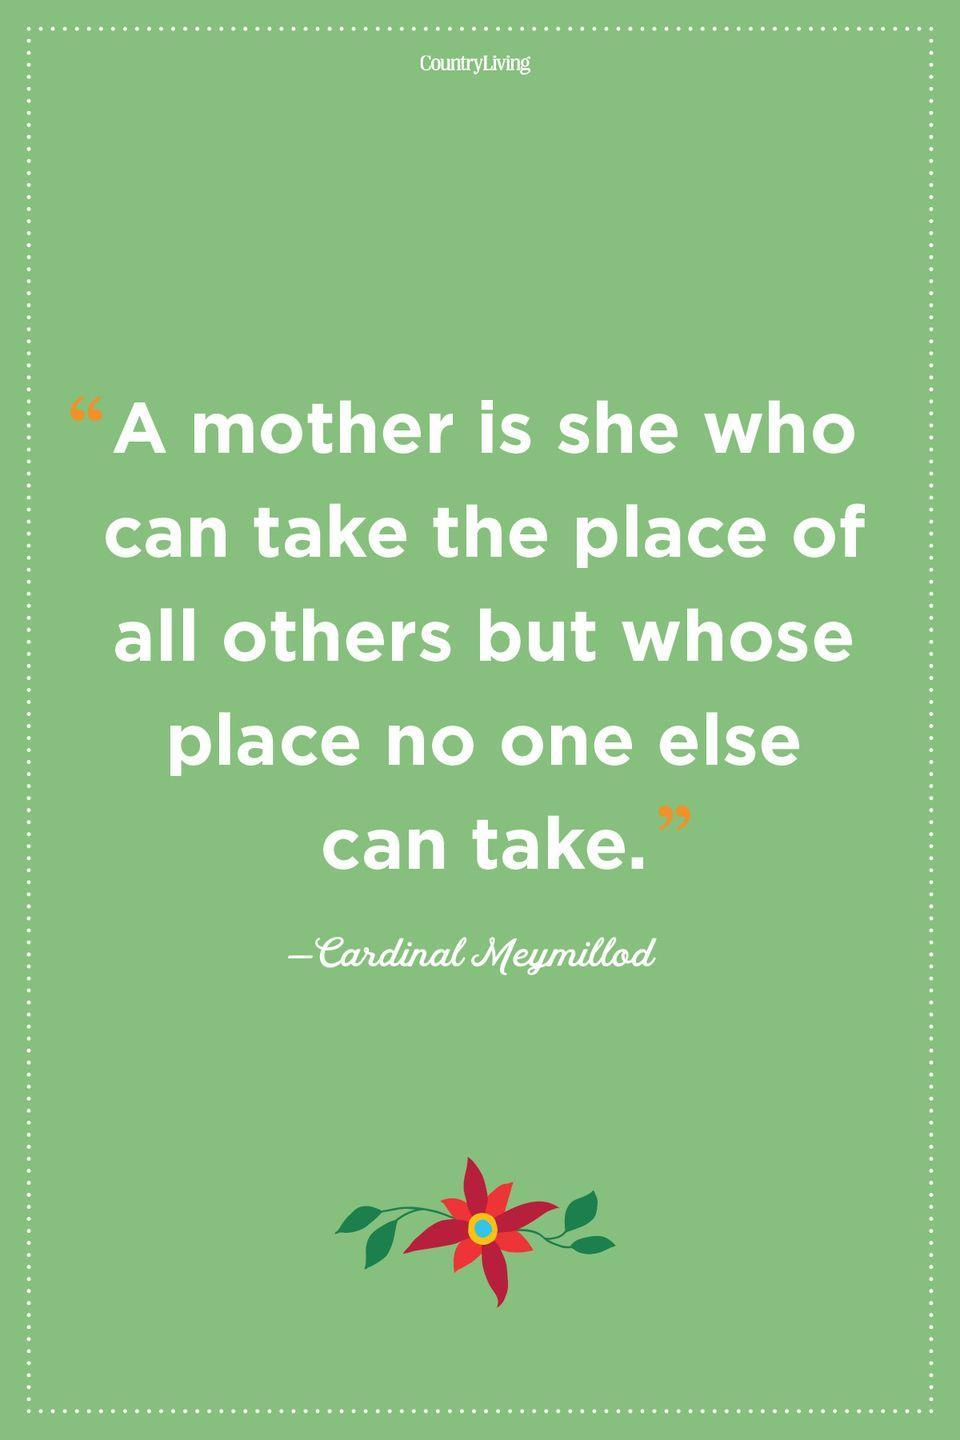 """<p>""""A mother is she who can take the place of all others but whose place no one else can take.""""</p>"""